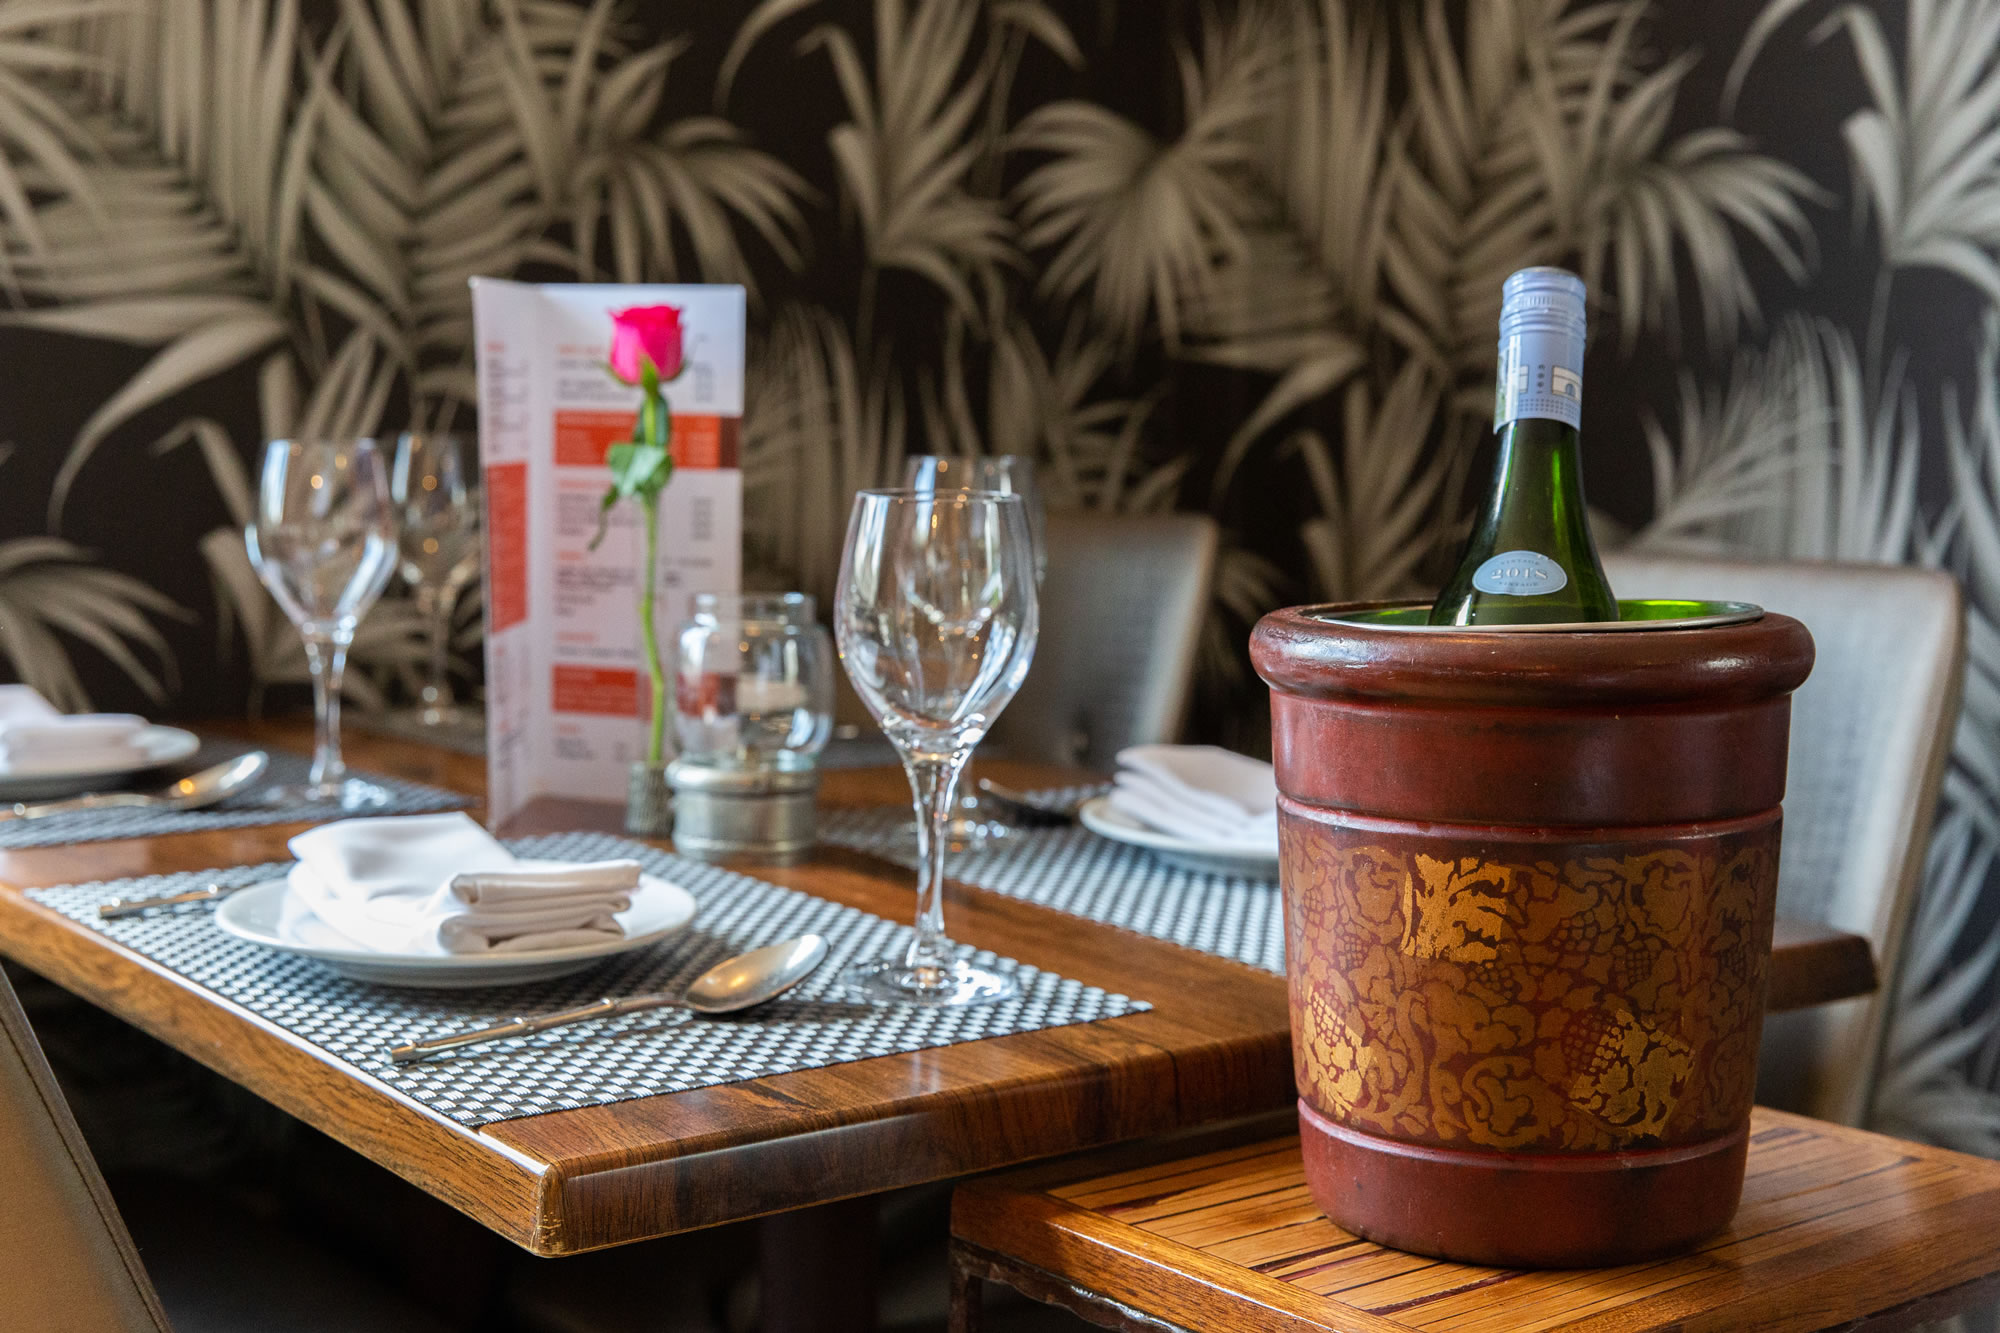 Thai dining & takeaway restaurant in Bishop's Stortford